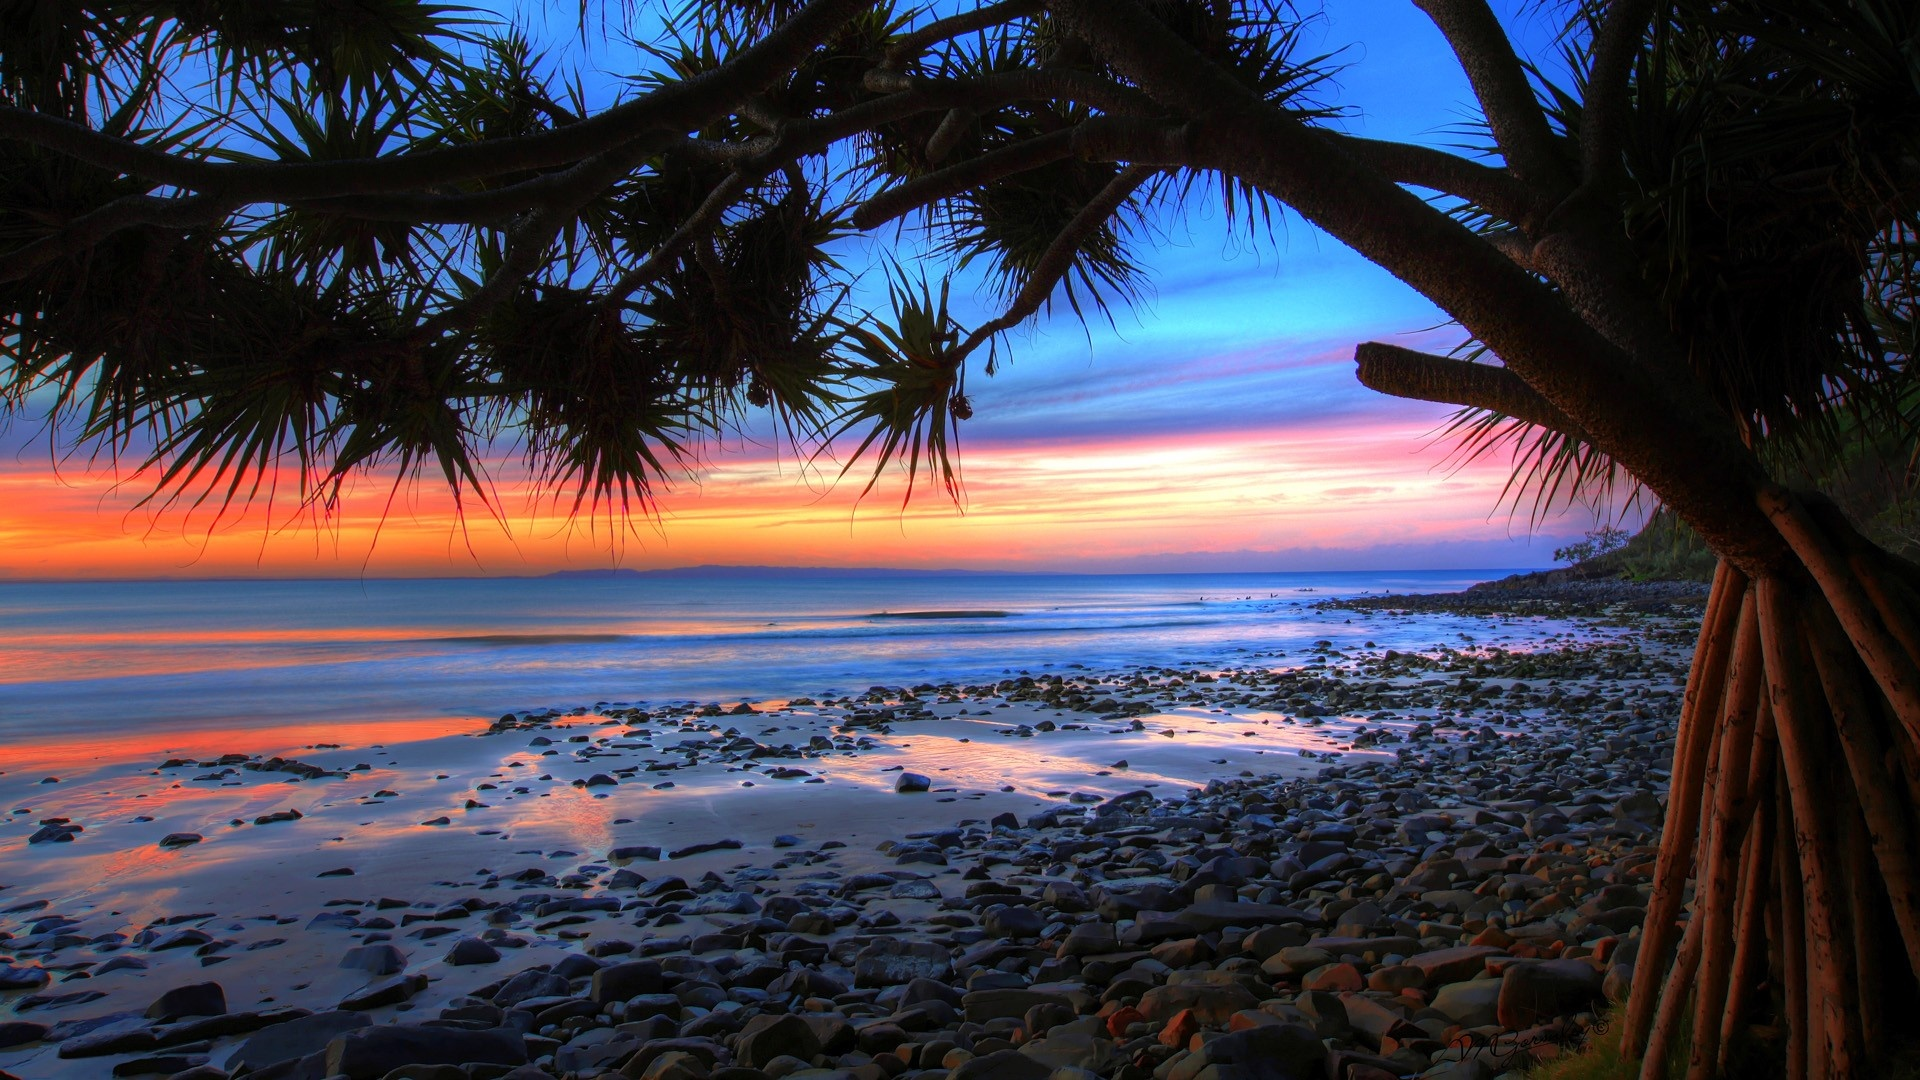 Windows 8 Background Windows 8 Australian Beach Sunset Wallpaper x 1920x1080